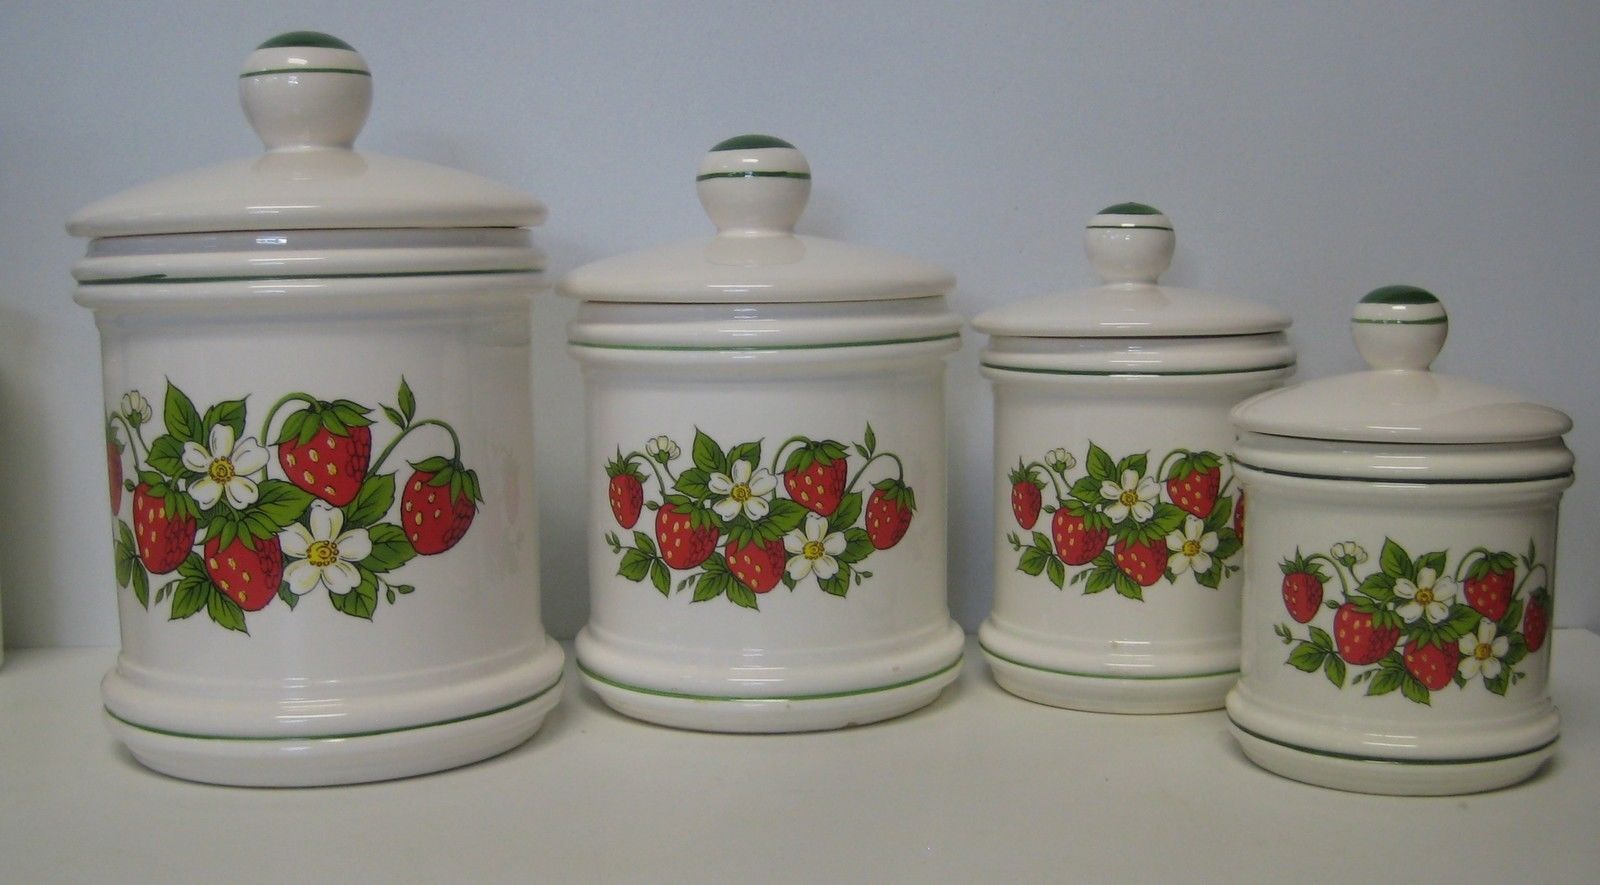 sears strawberry country kitchen canister set 4 total made